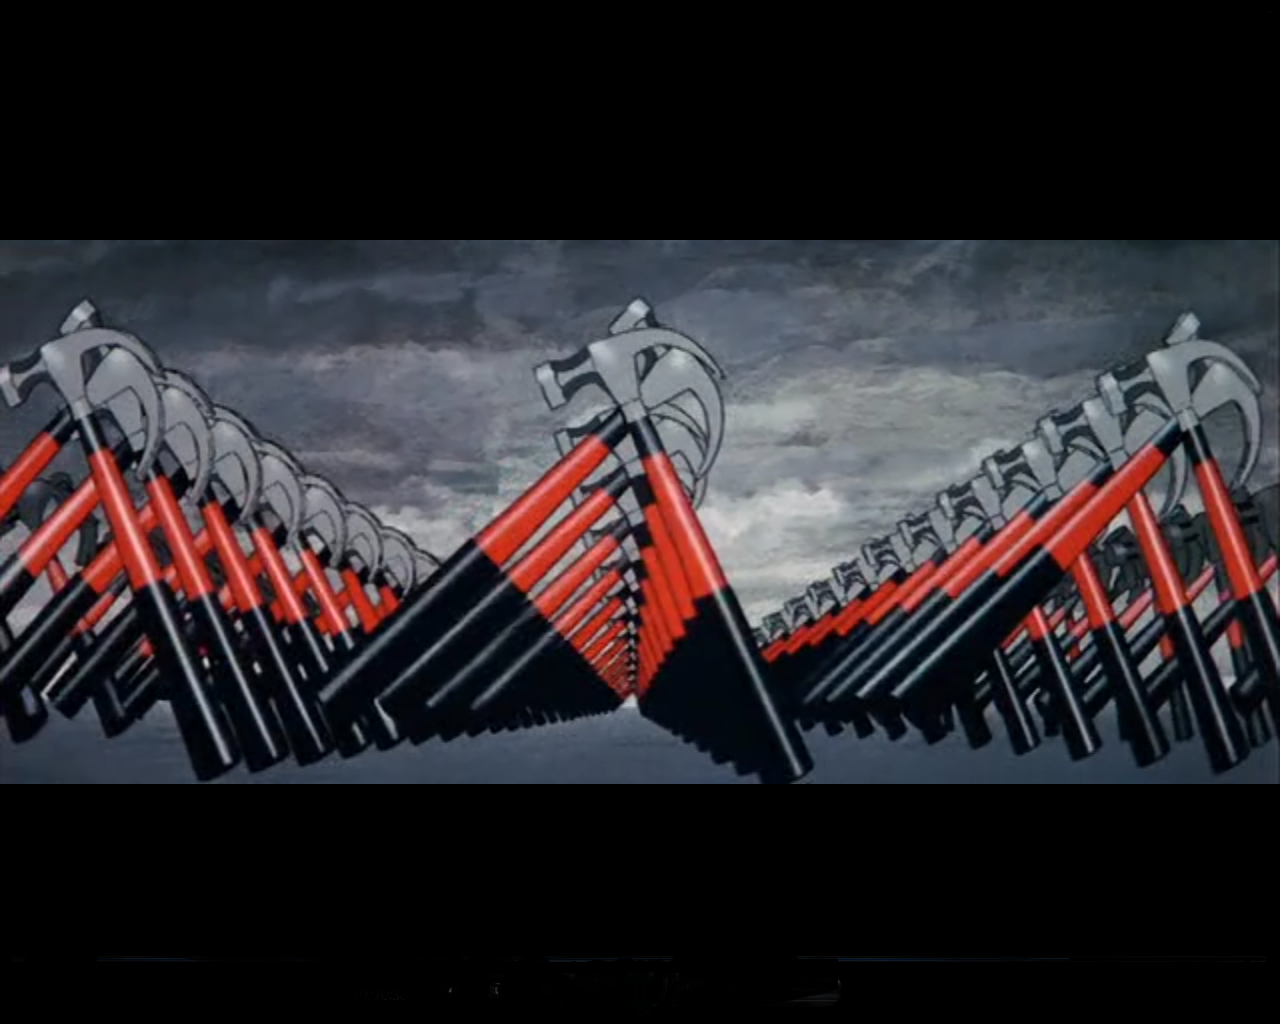 Pink Floyd The Wall Wallpapers 1280x1024